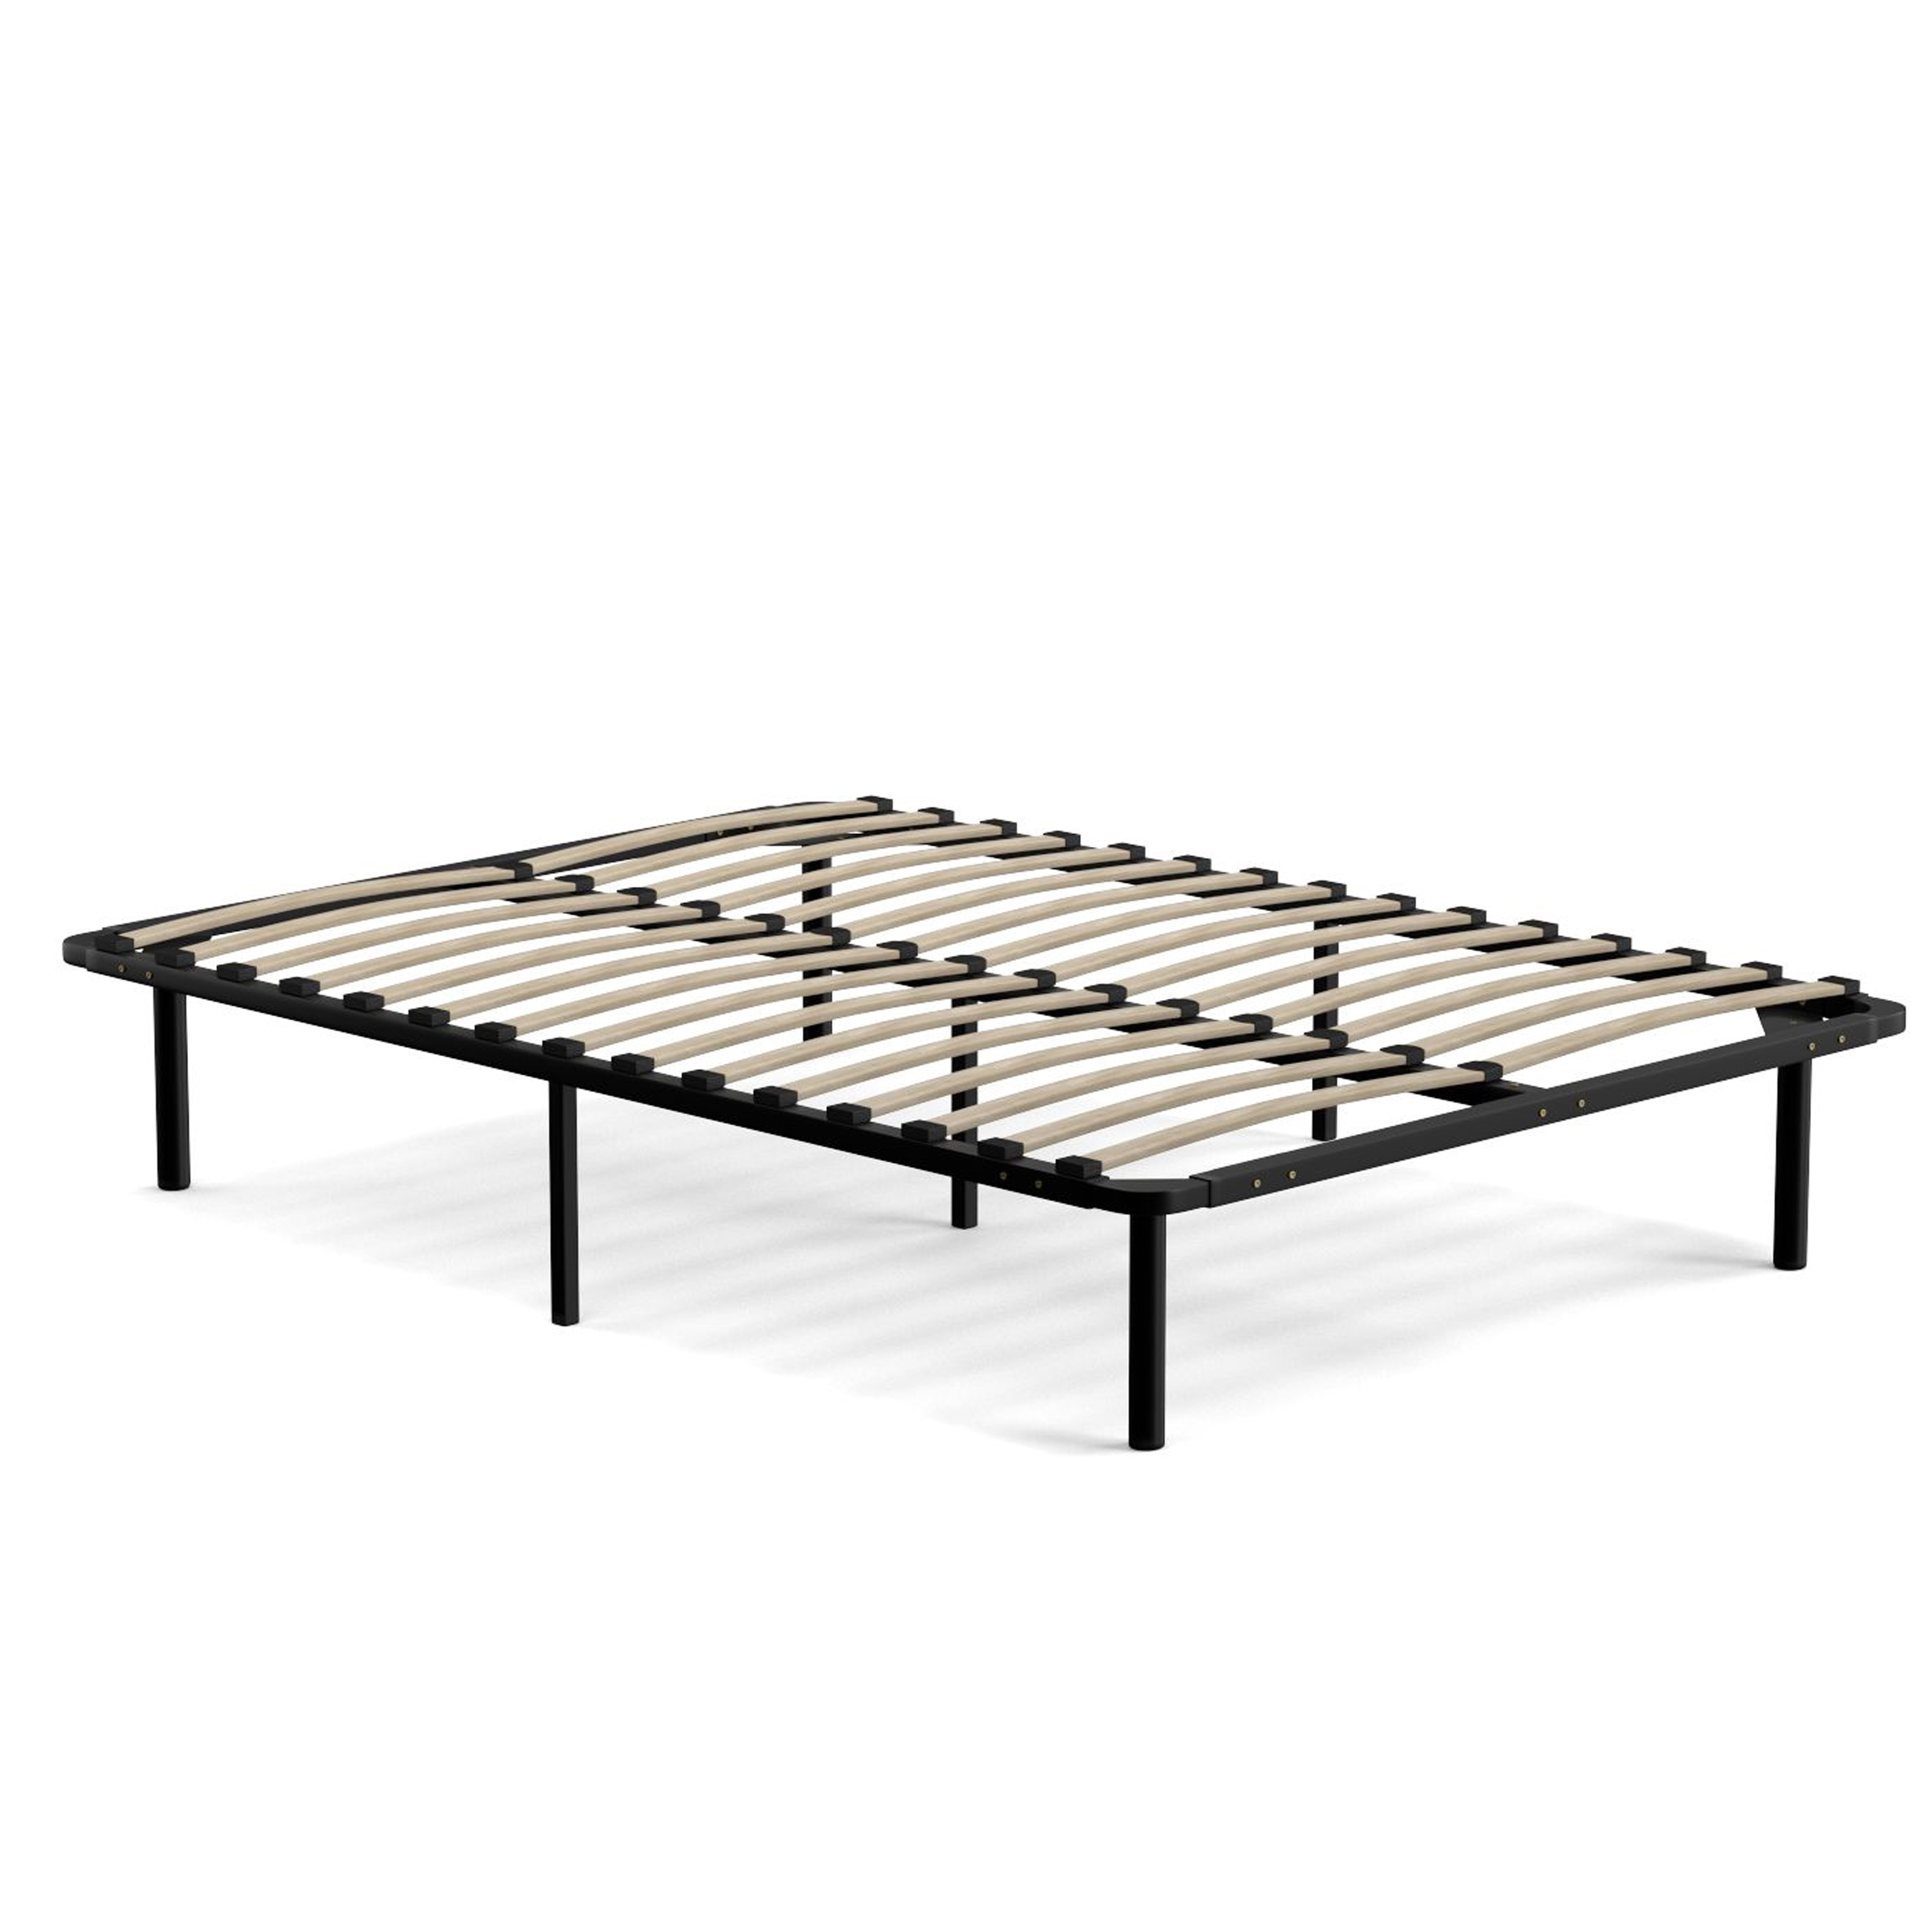 Handy Living Full Size Wood Slat Bed Frame On Free Shipping Today 12063121